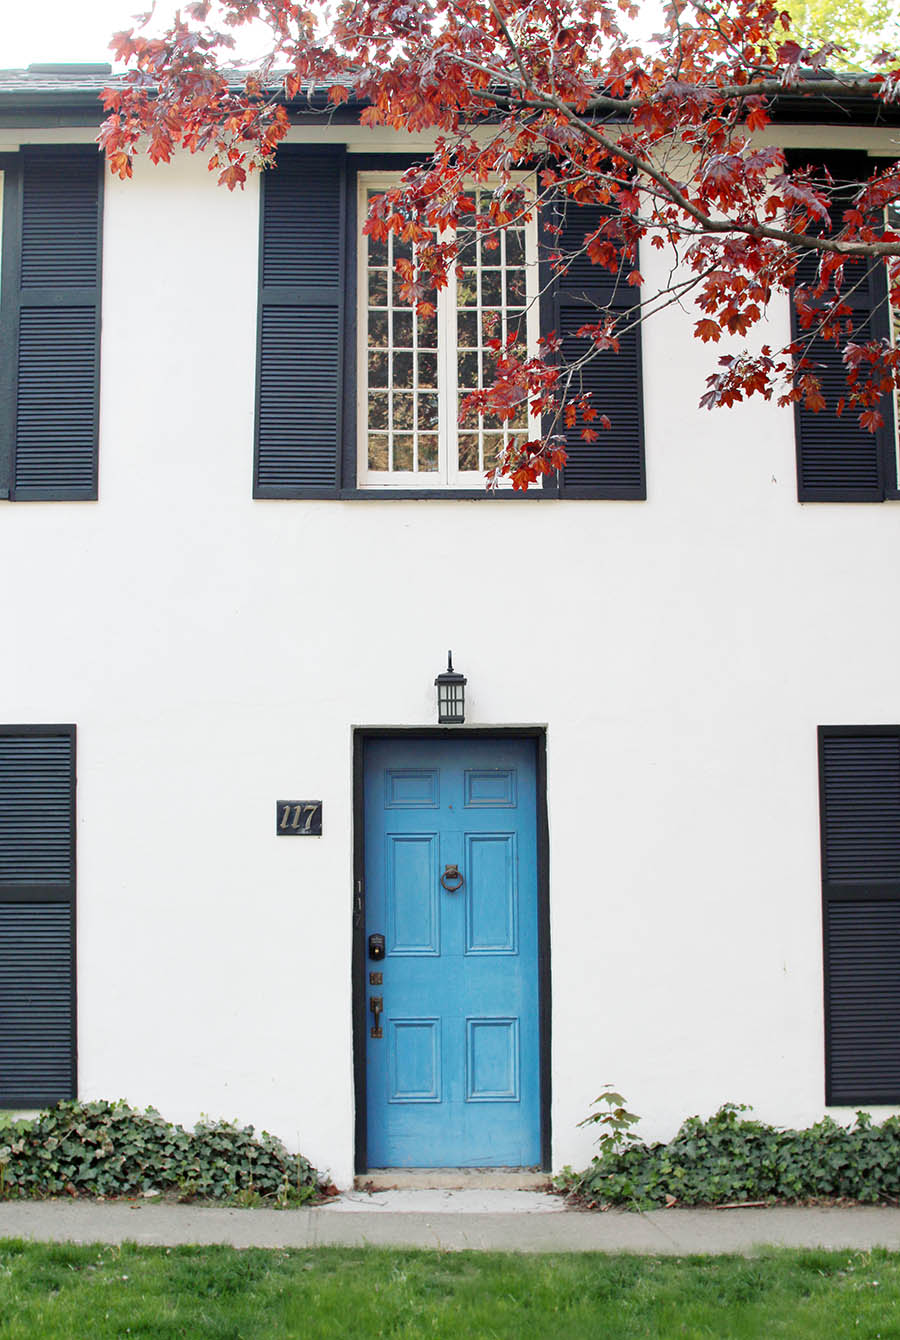 House-With-Bloor-Door-Niagara-On-The-Lake-